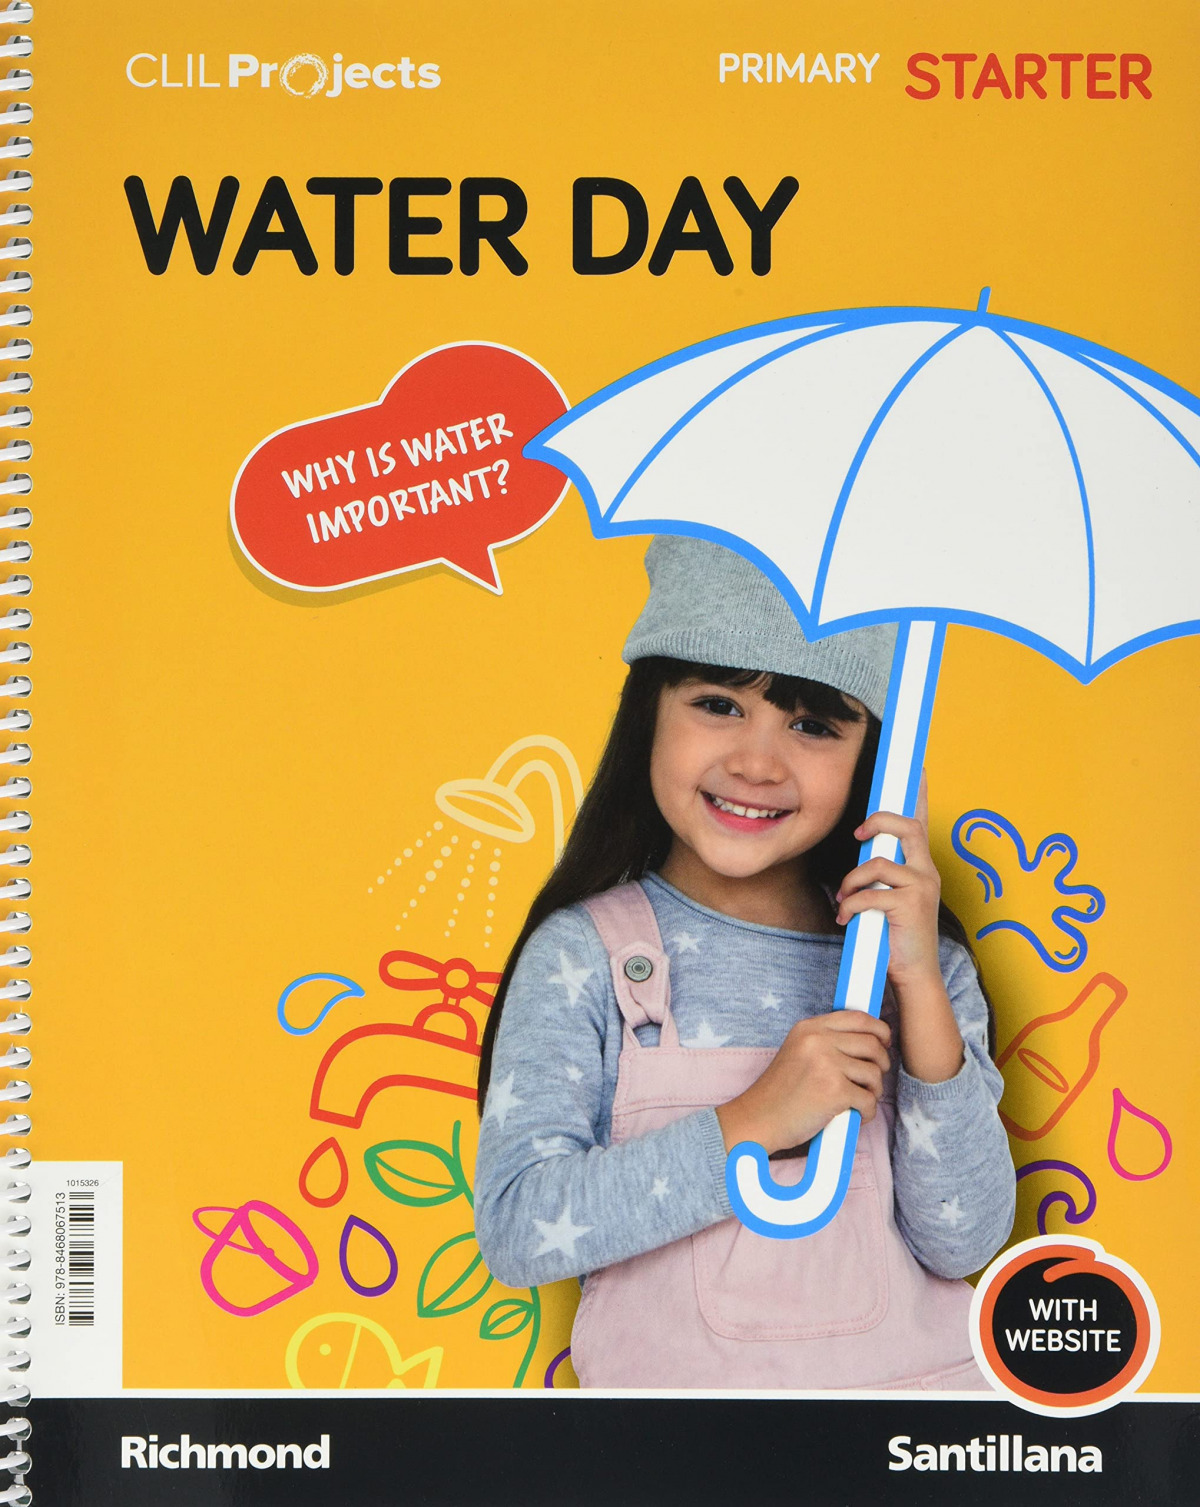 CLIL PROJECTS NIV 0 WATER DAY ED21